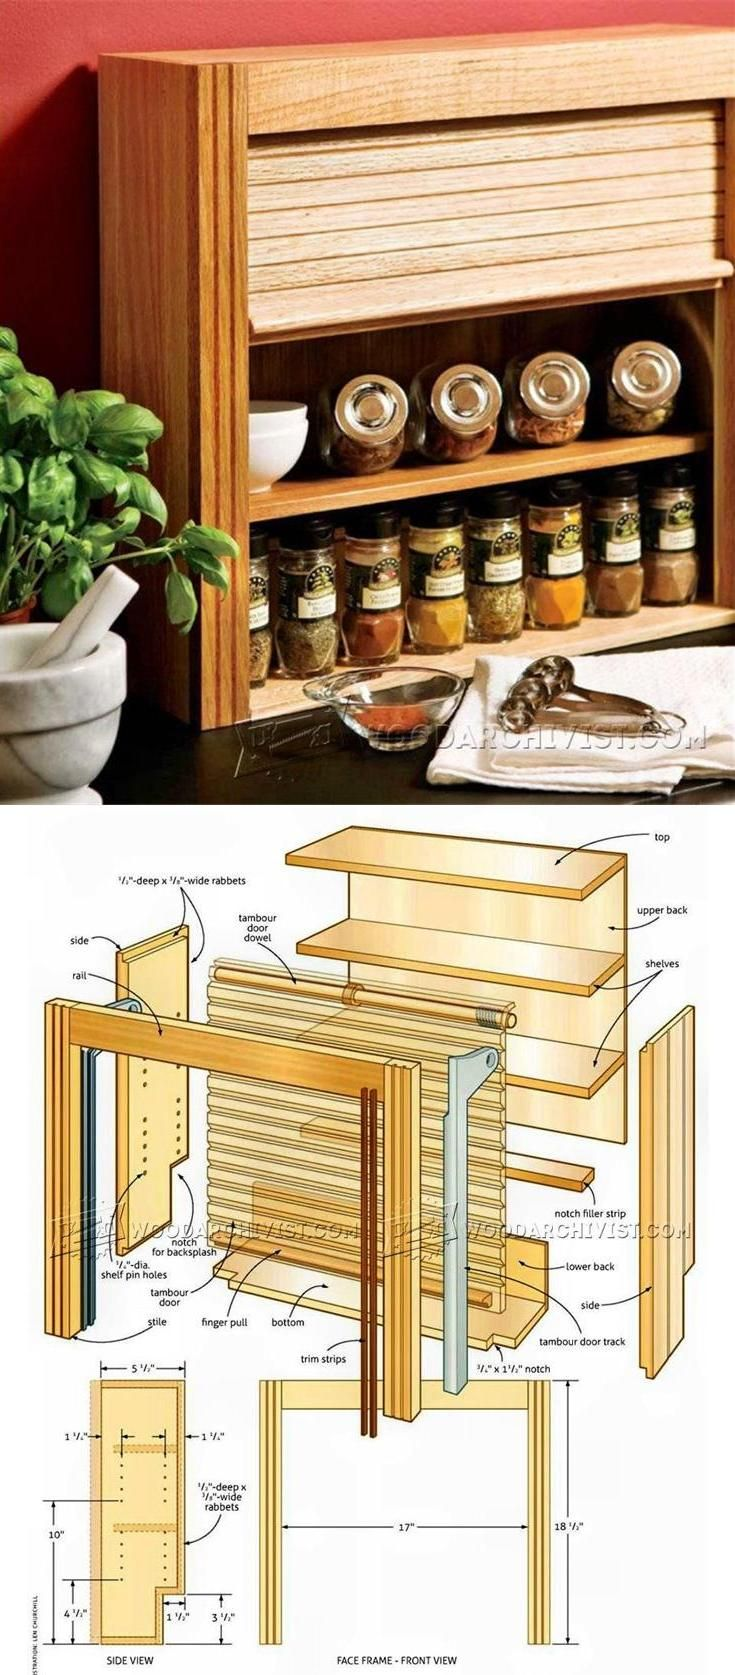 25 best ideas about spice racks on pinterest spice rack organization spice holder and spice. Black Bedroom Furniture Sets. Home Design Ideas